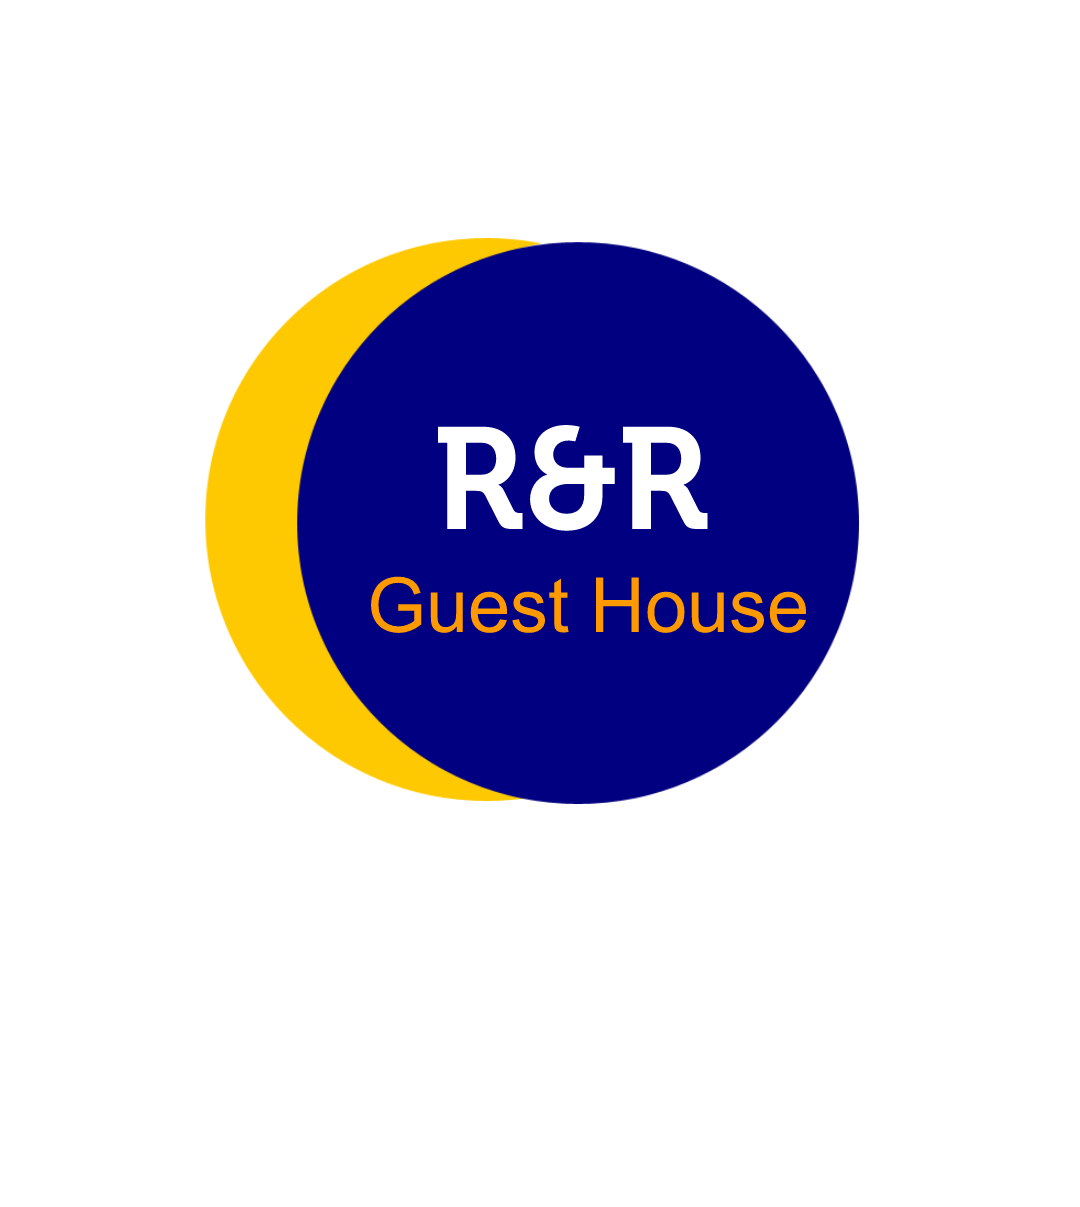 R&R Guest House